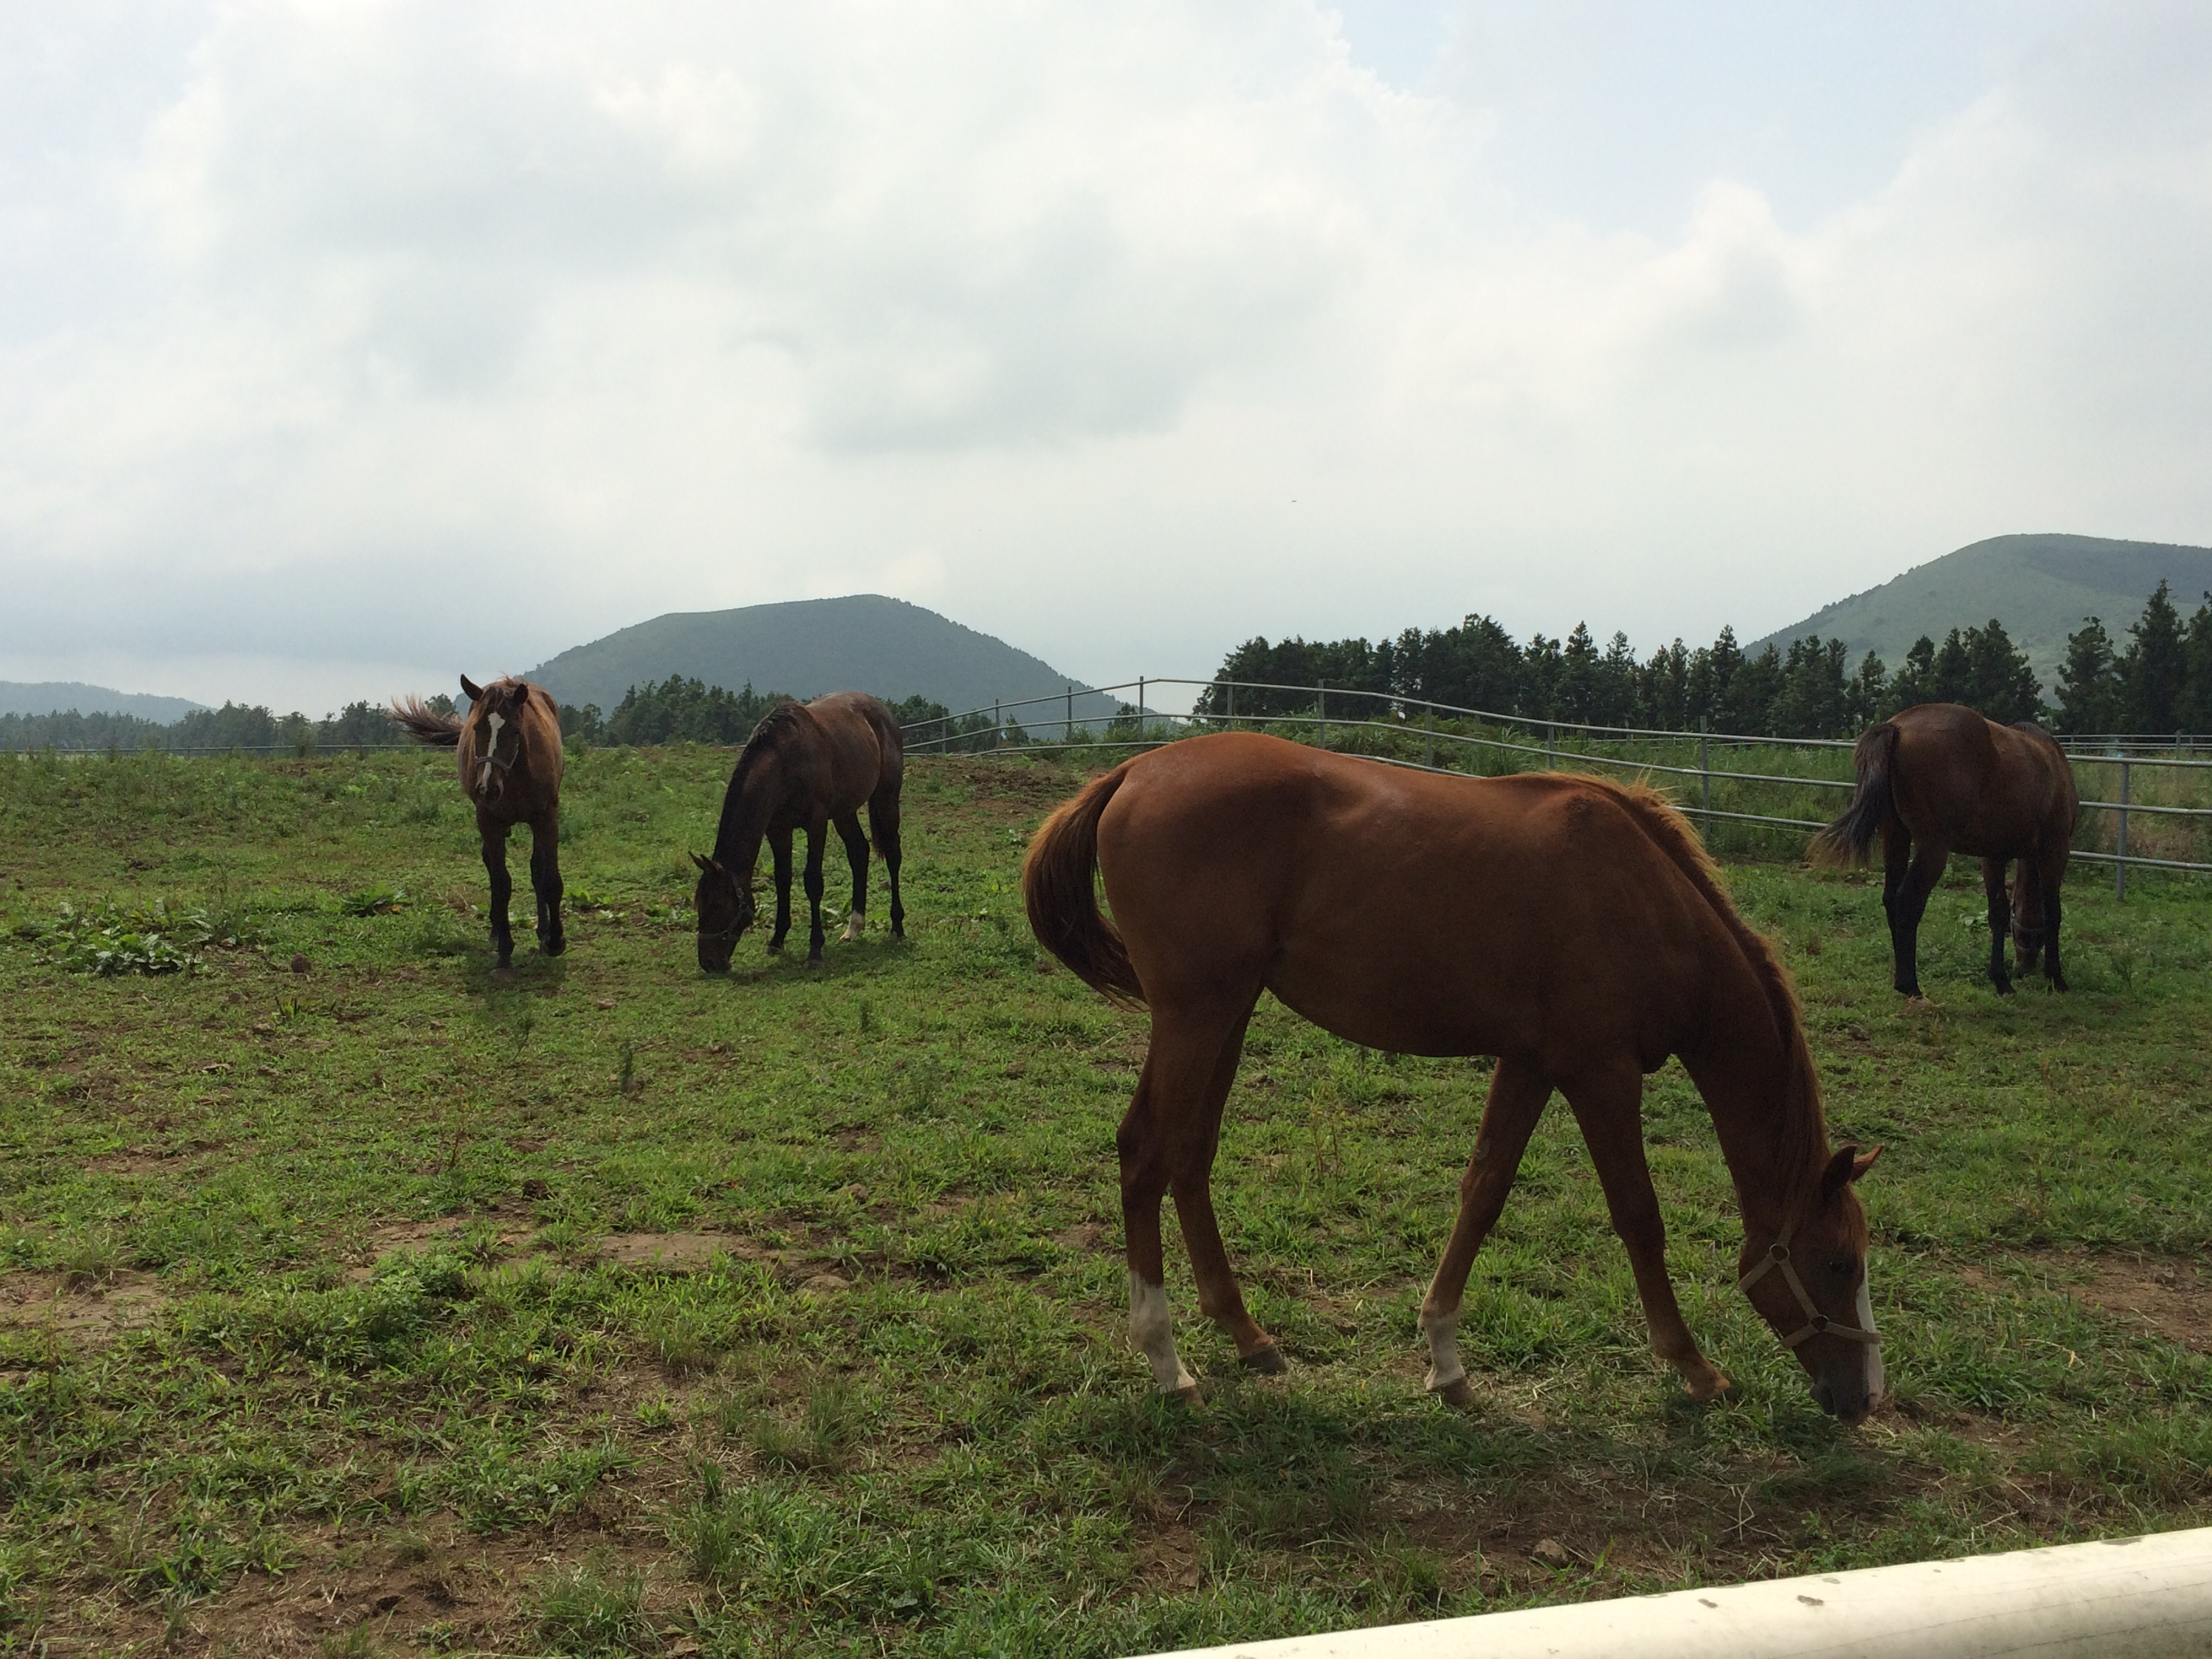 Nokwon Farm on Jeju: it may lack the rich vegetation of Kentucky, but the breeding industry in South Korea is definitely going places. Photo: Katherine Ford